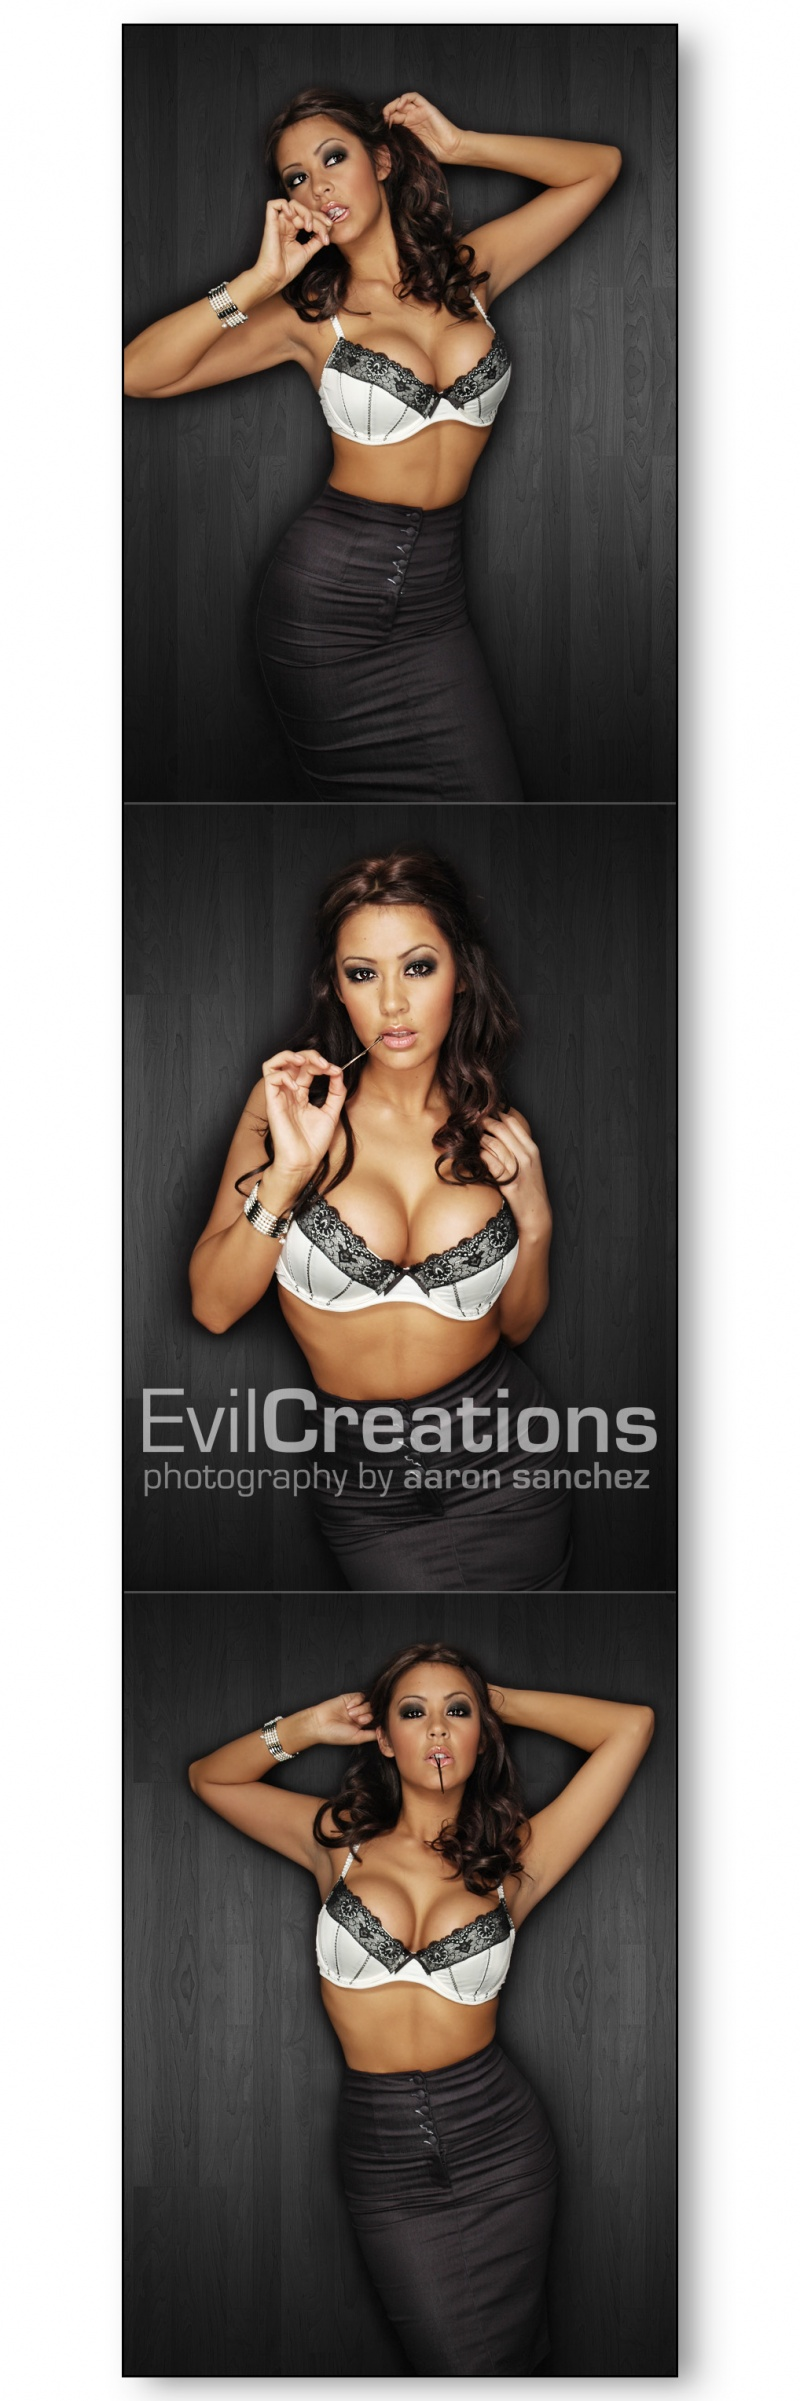 EvilCreations Studios Feb 04, 2008 EvilCreationsinc.com My Personal assistant..Melyssa Grace..how do ya like that Epix?!